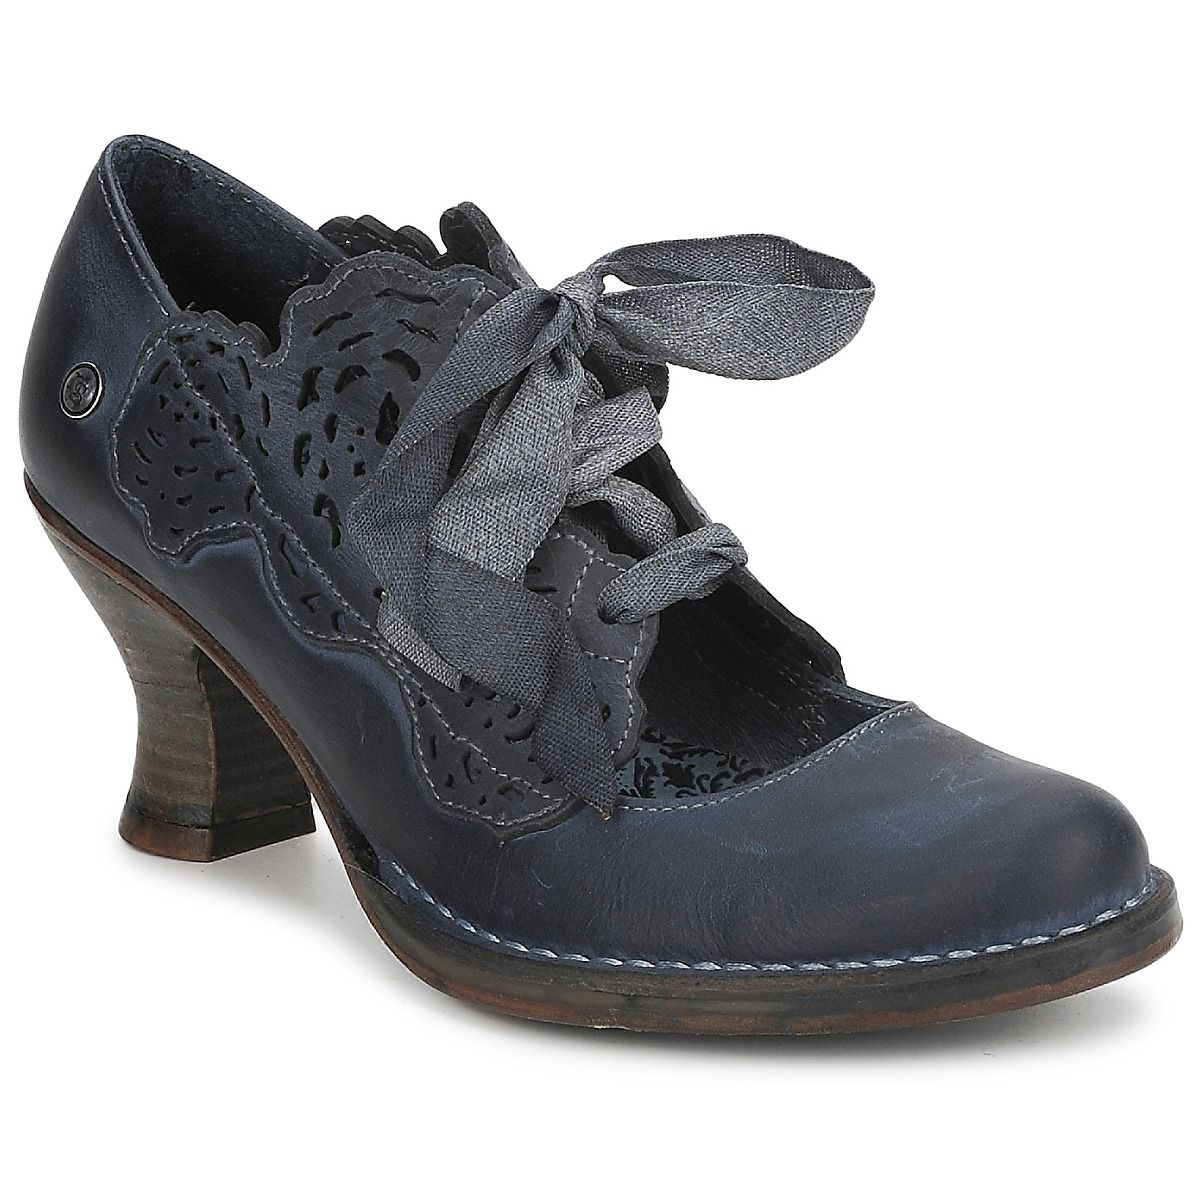 Chaussures neosens, Chaussure et Chaussures bleues